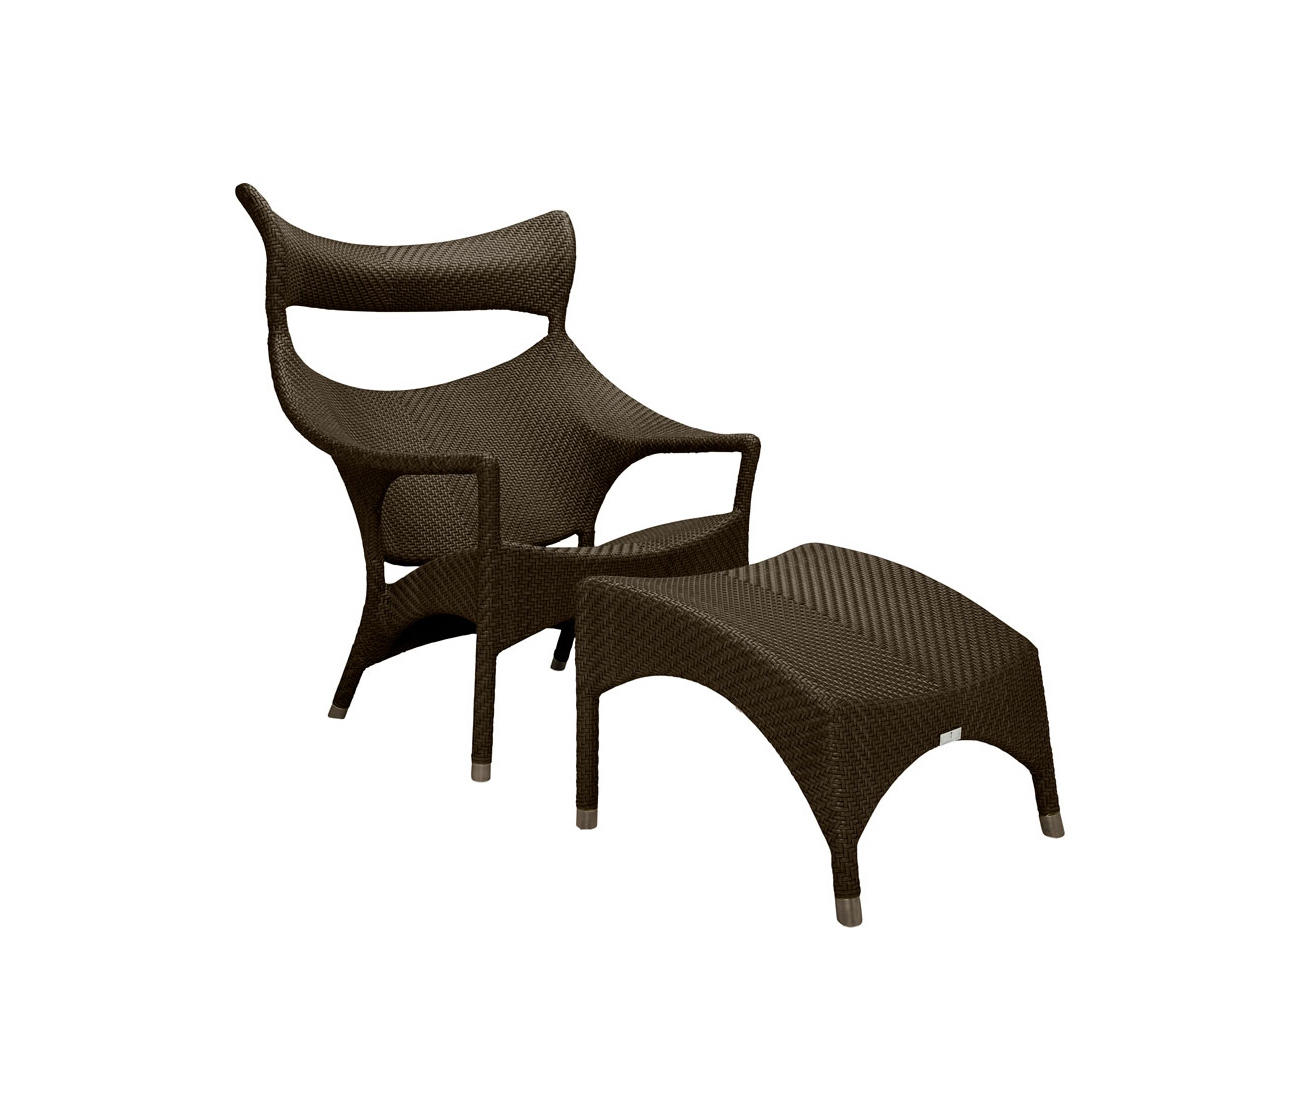 Amari High Back Lounge Chair Ottoman Armchairs From